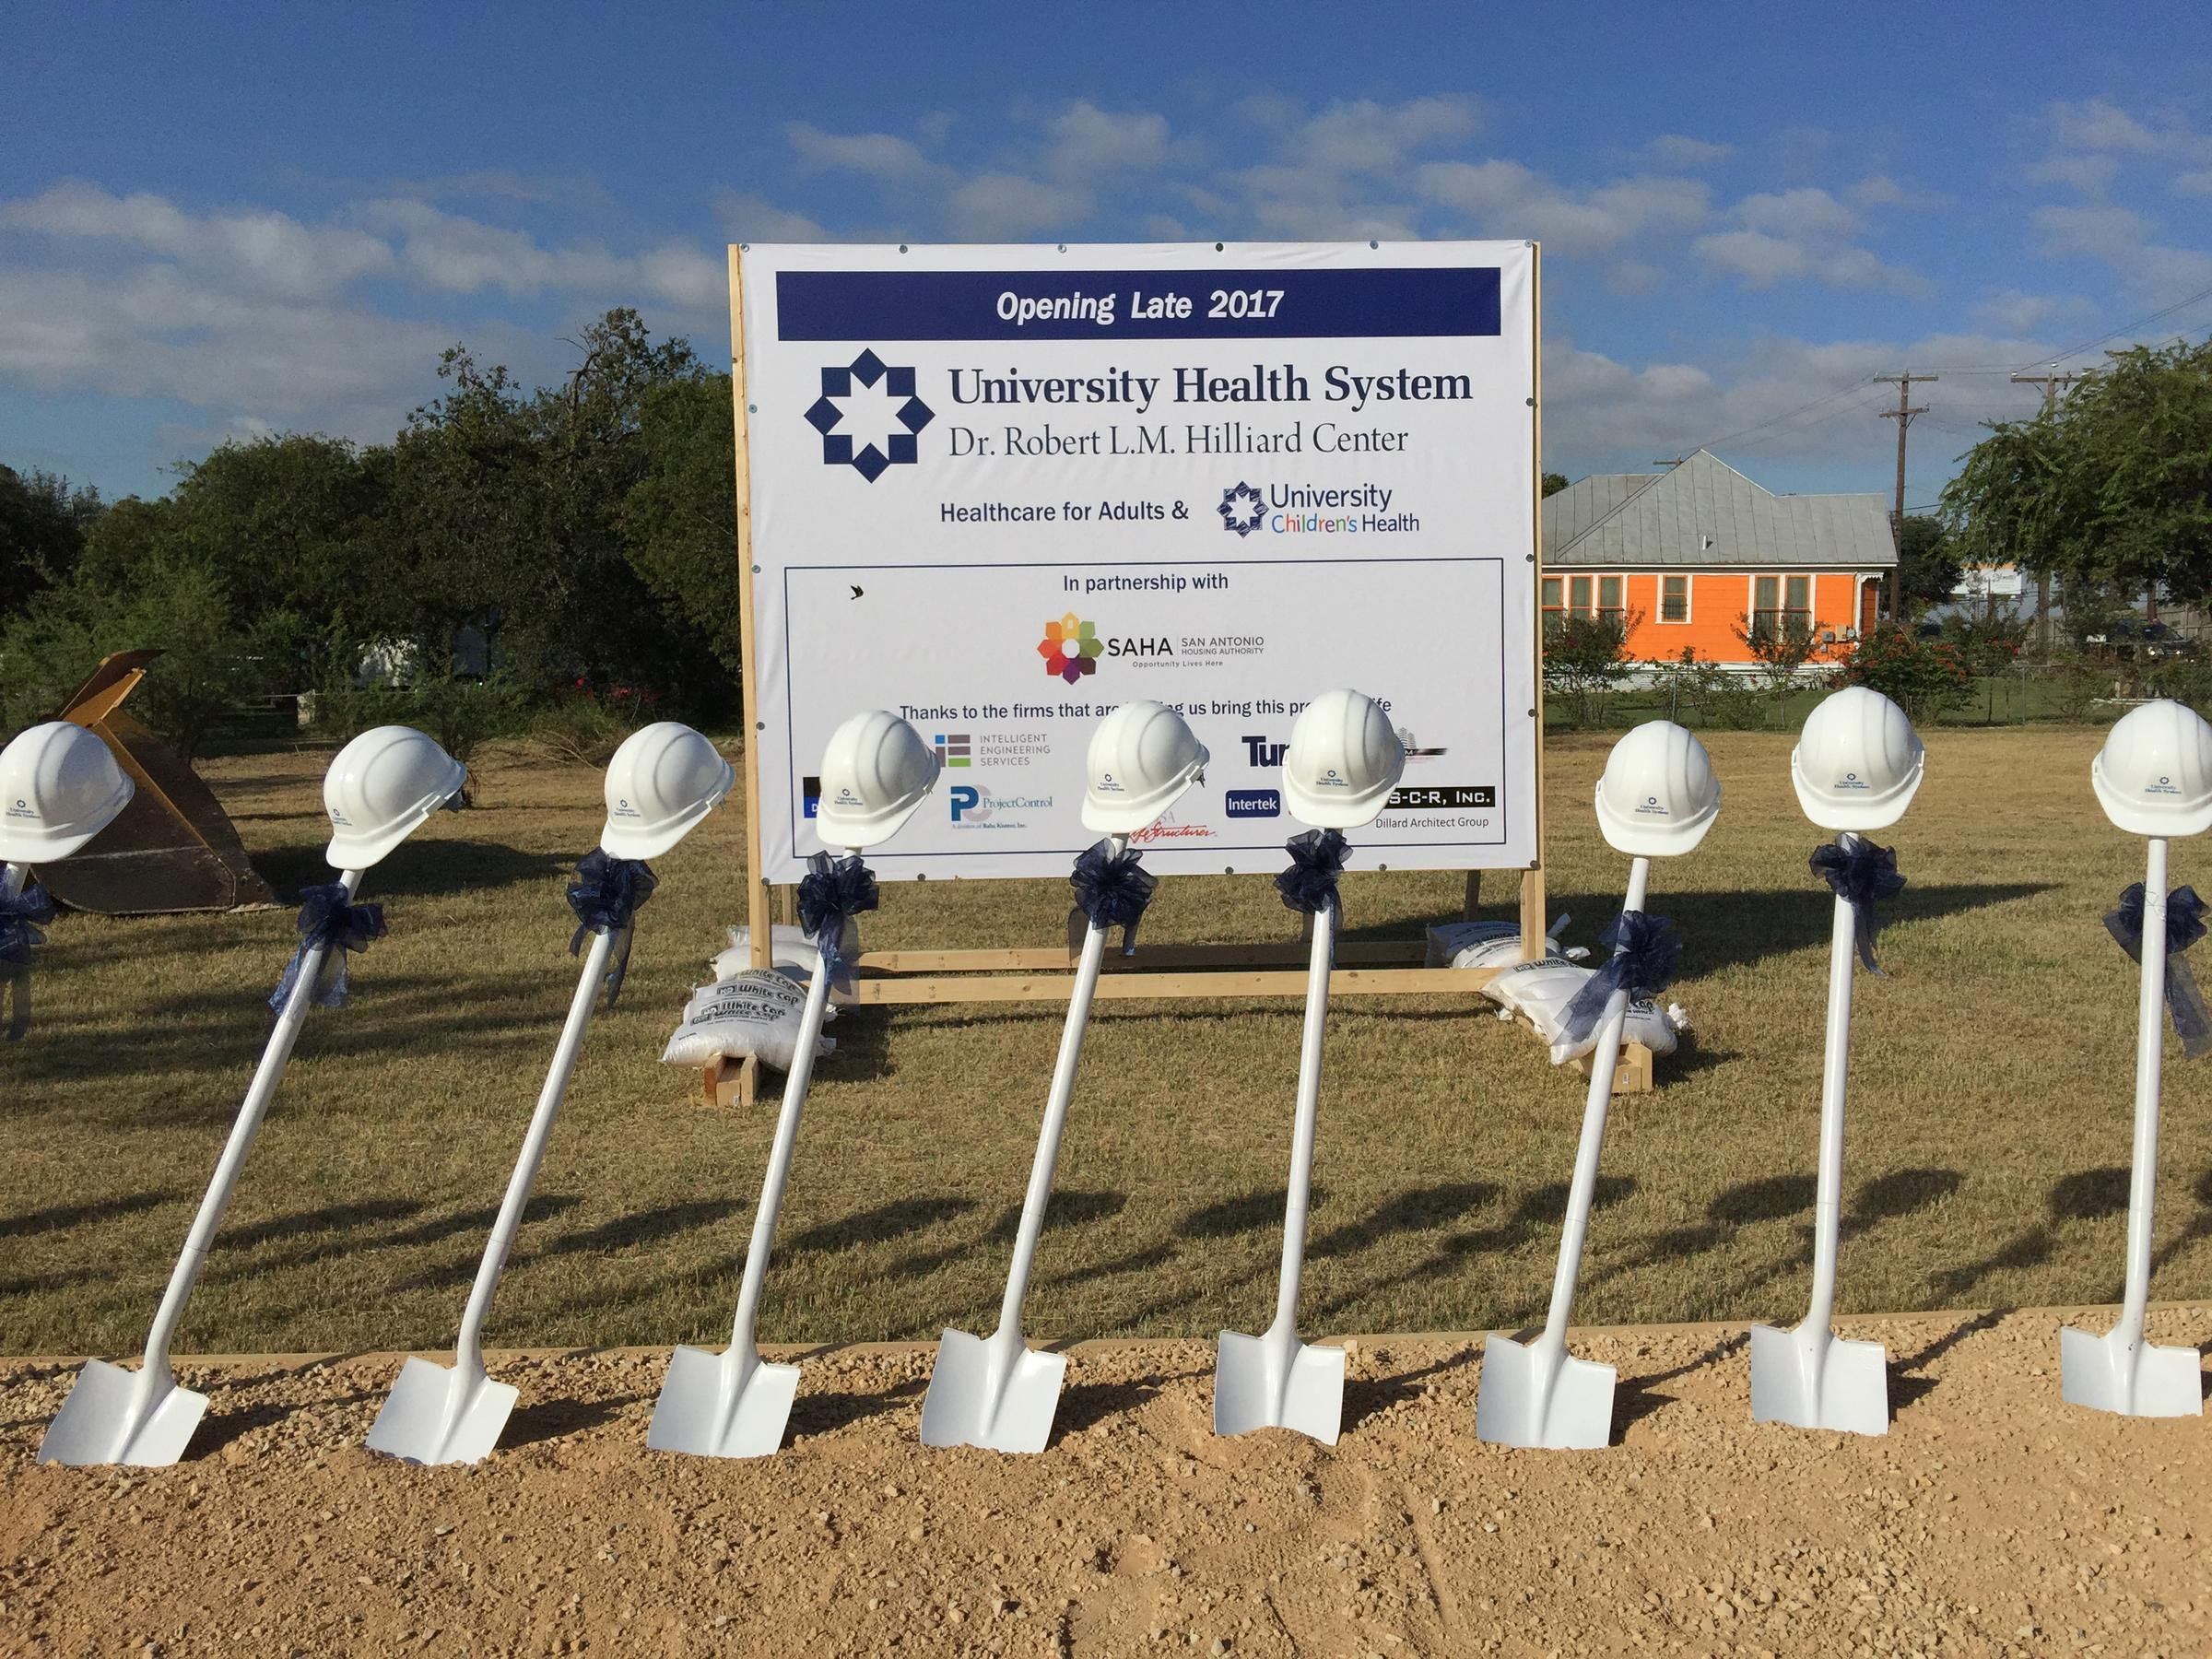 New East Side SA Clinic Will Bear Pioneering Physician's